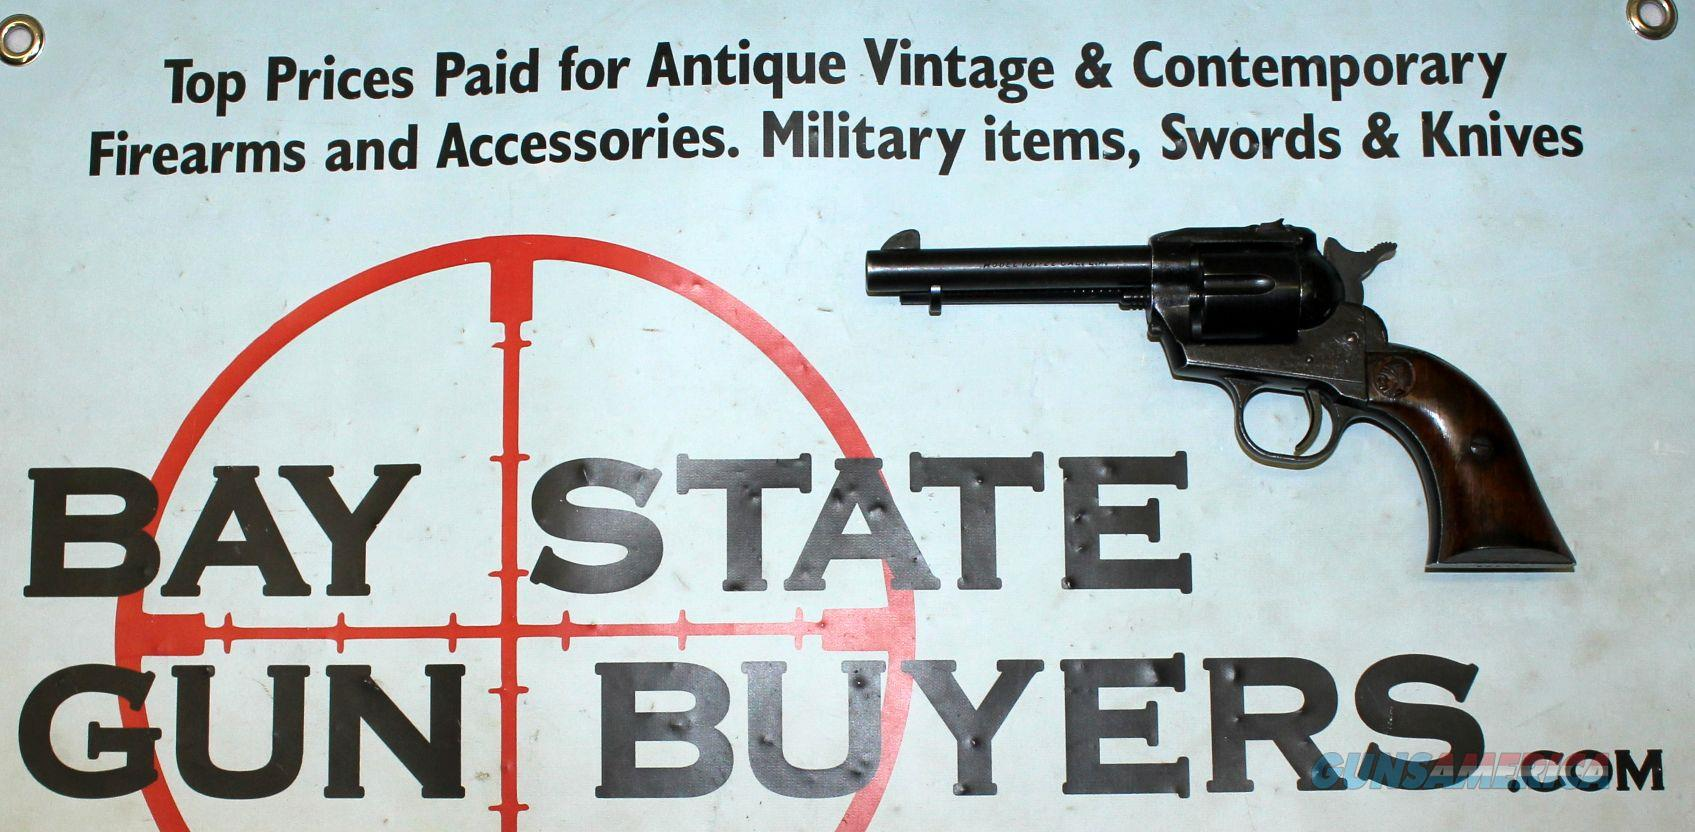 Savage Model 101 Single Shot Pistol / Revolver .22LR - SCARCE 1960's GUN  Guns > Pistols > Savage Pistols